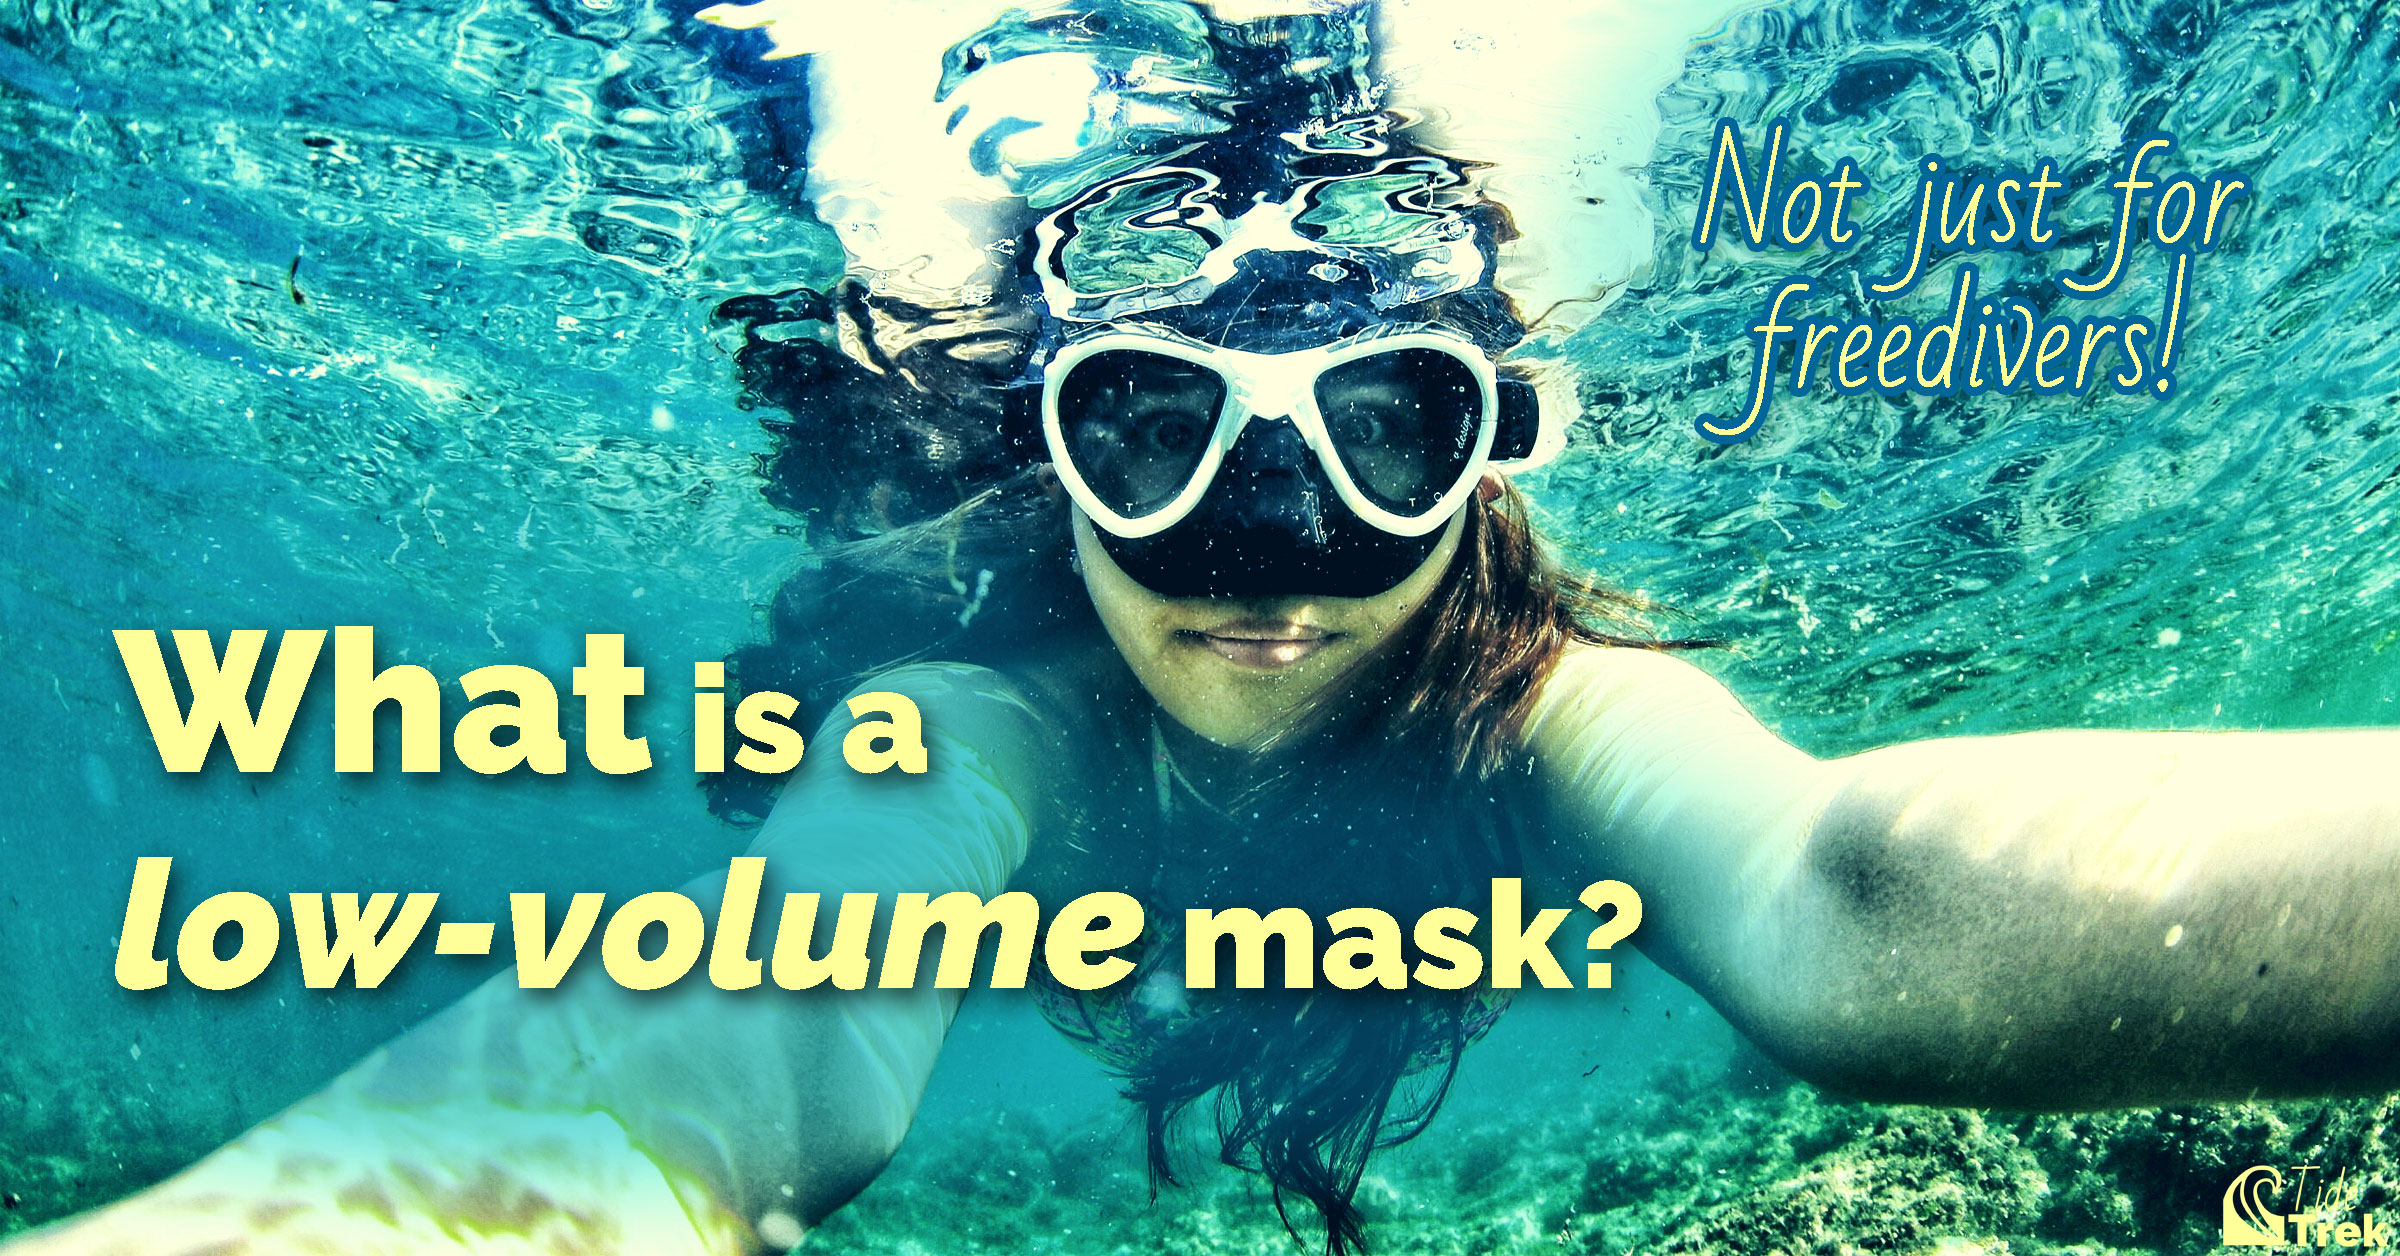 Underwater photo of a woman wearing a low-volume mask. What is a low-volume mask?